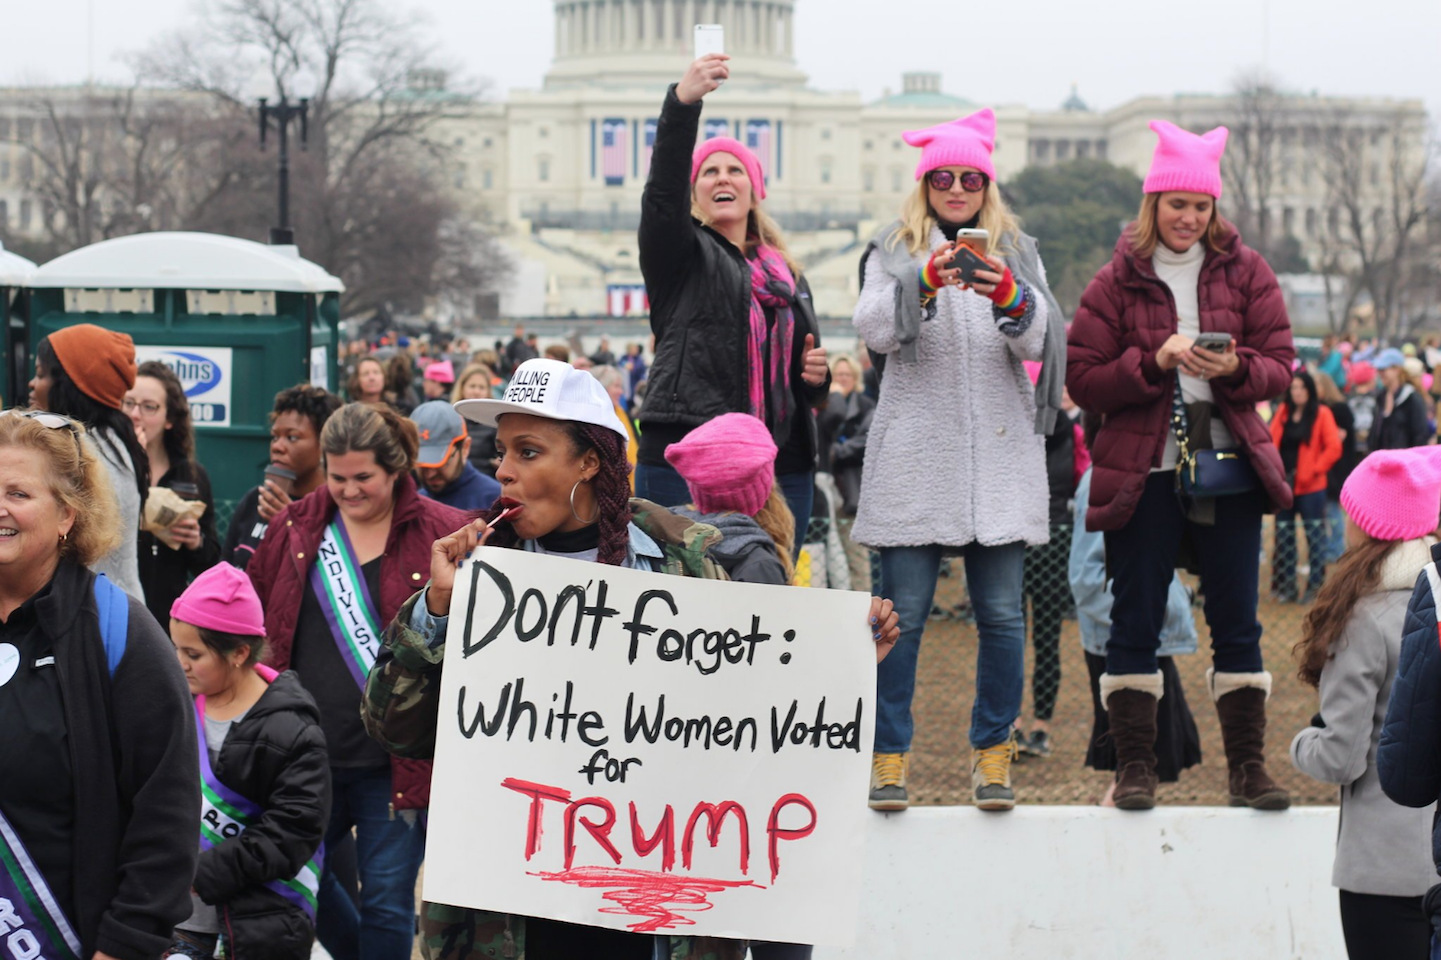 Protesters at the Women's March on Washington.